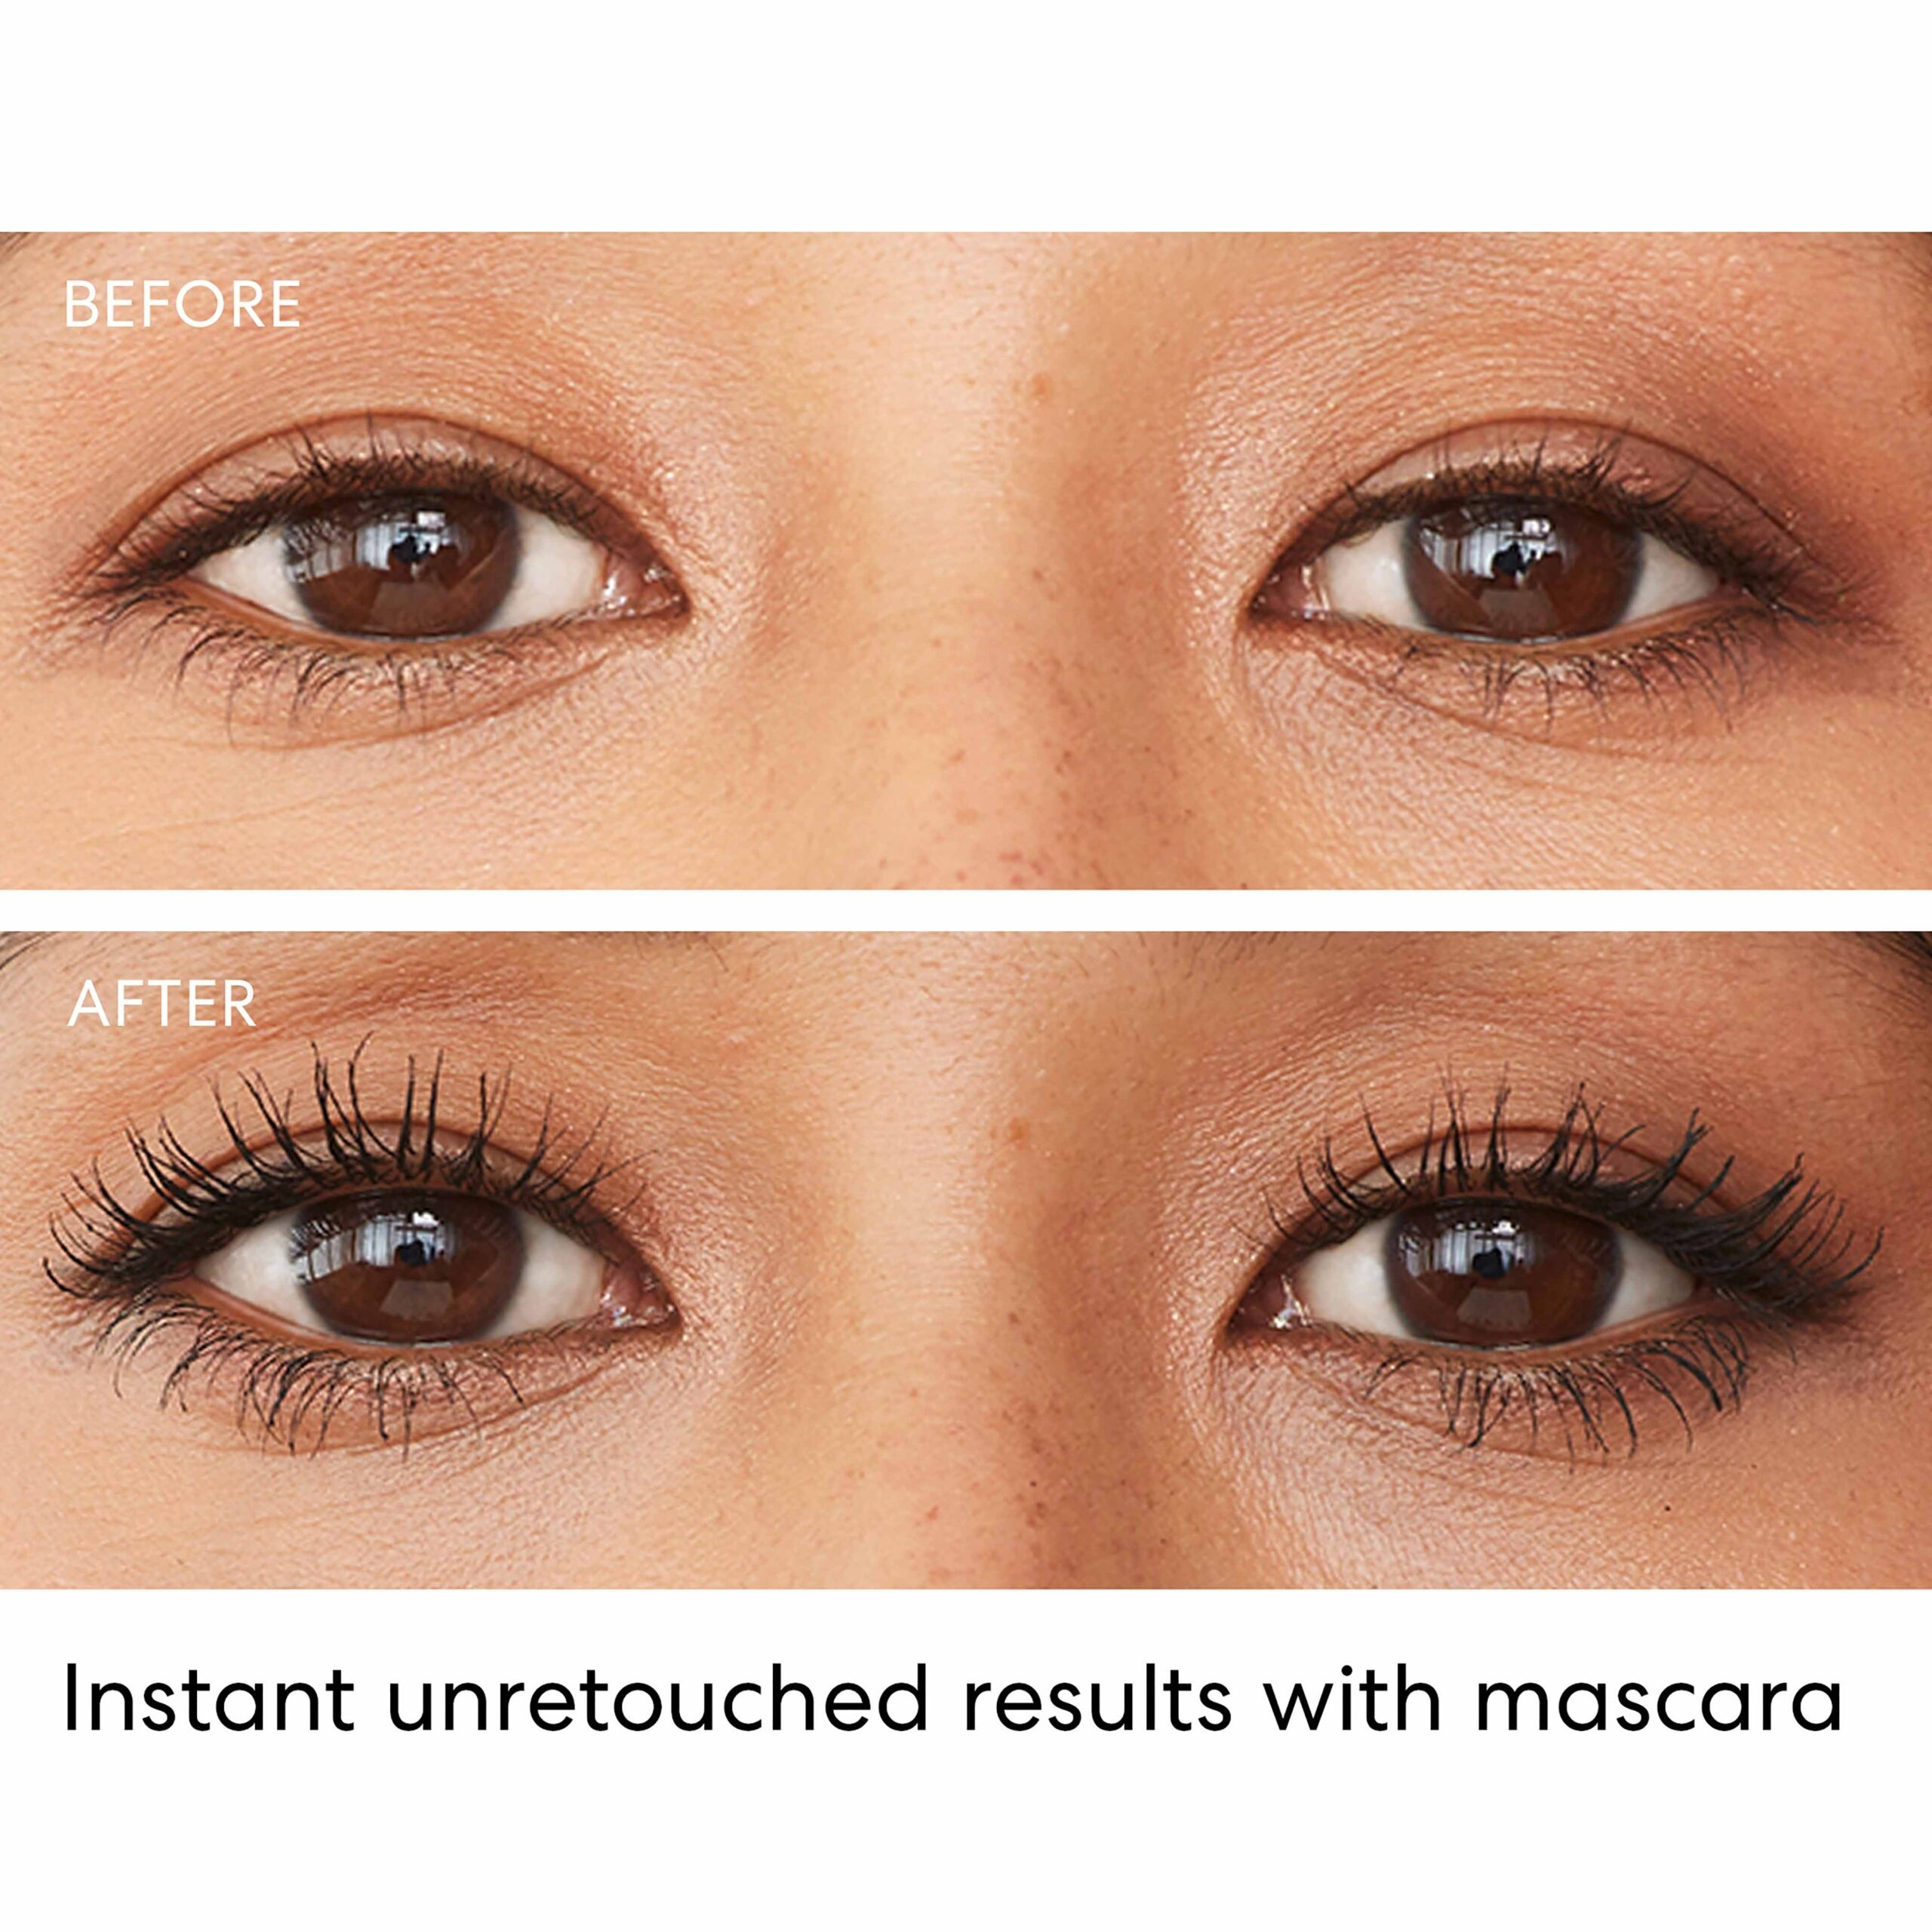 StrengthLength_Serum-Infused_Mascara_Mascara_Before_After_Instant-scaled